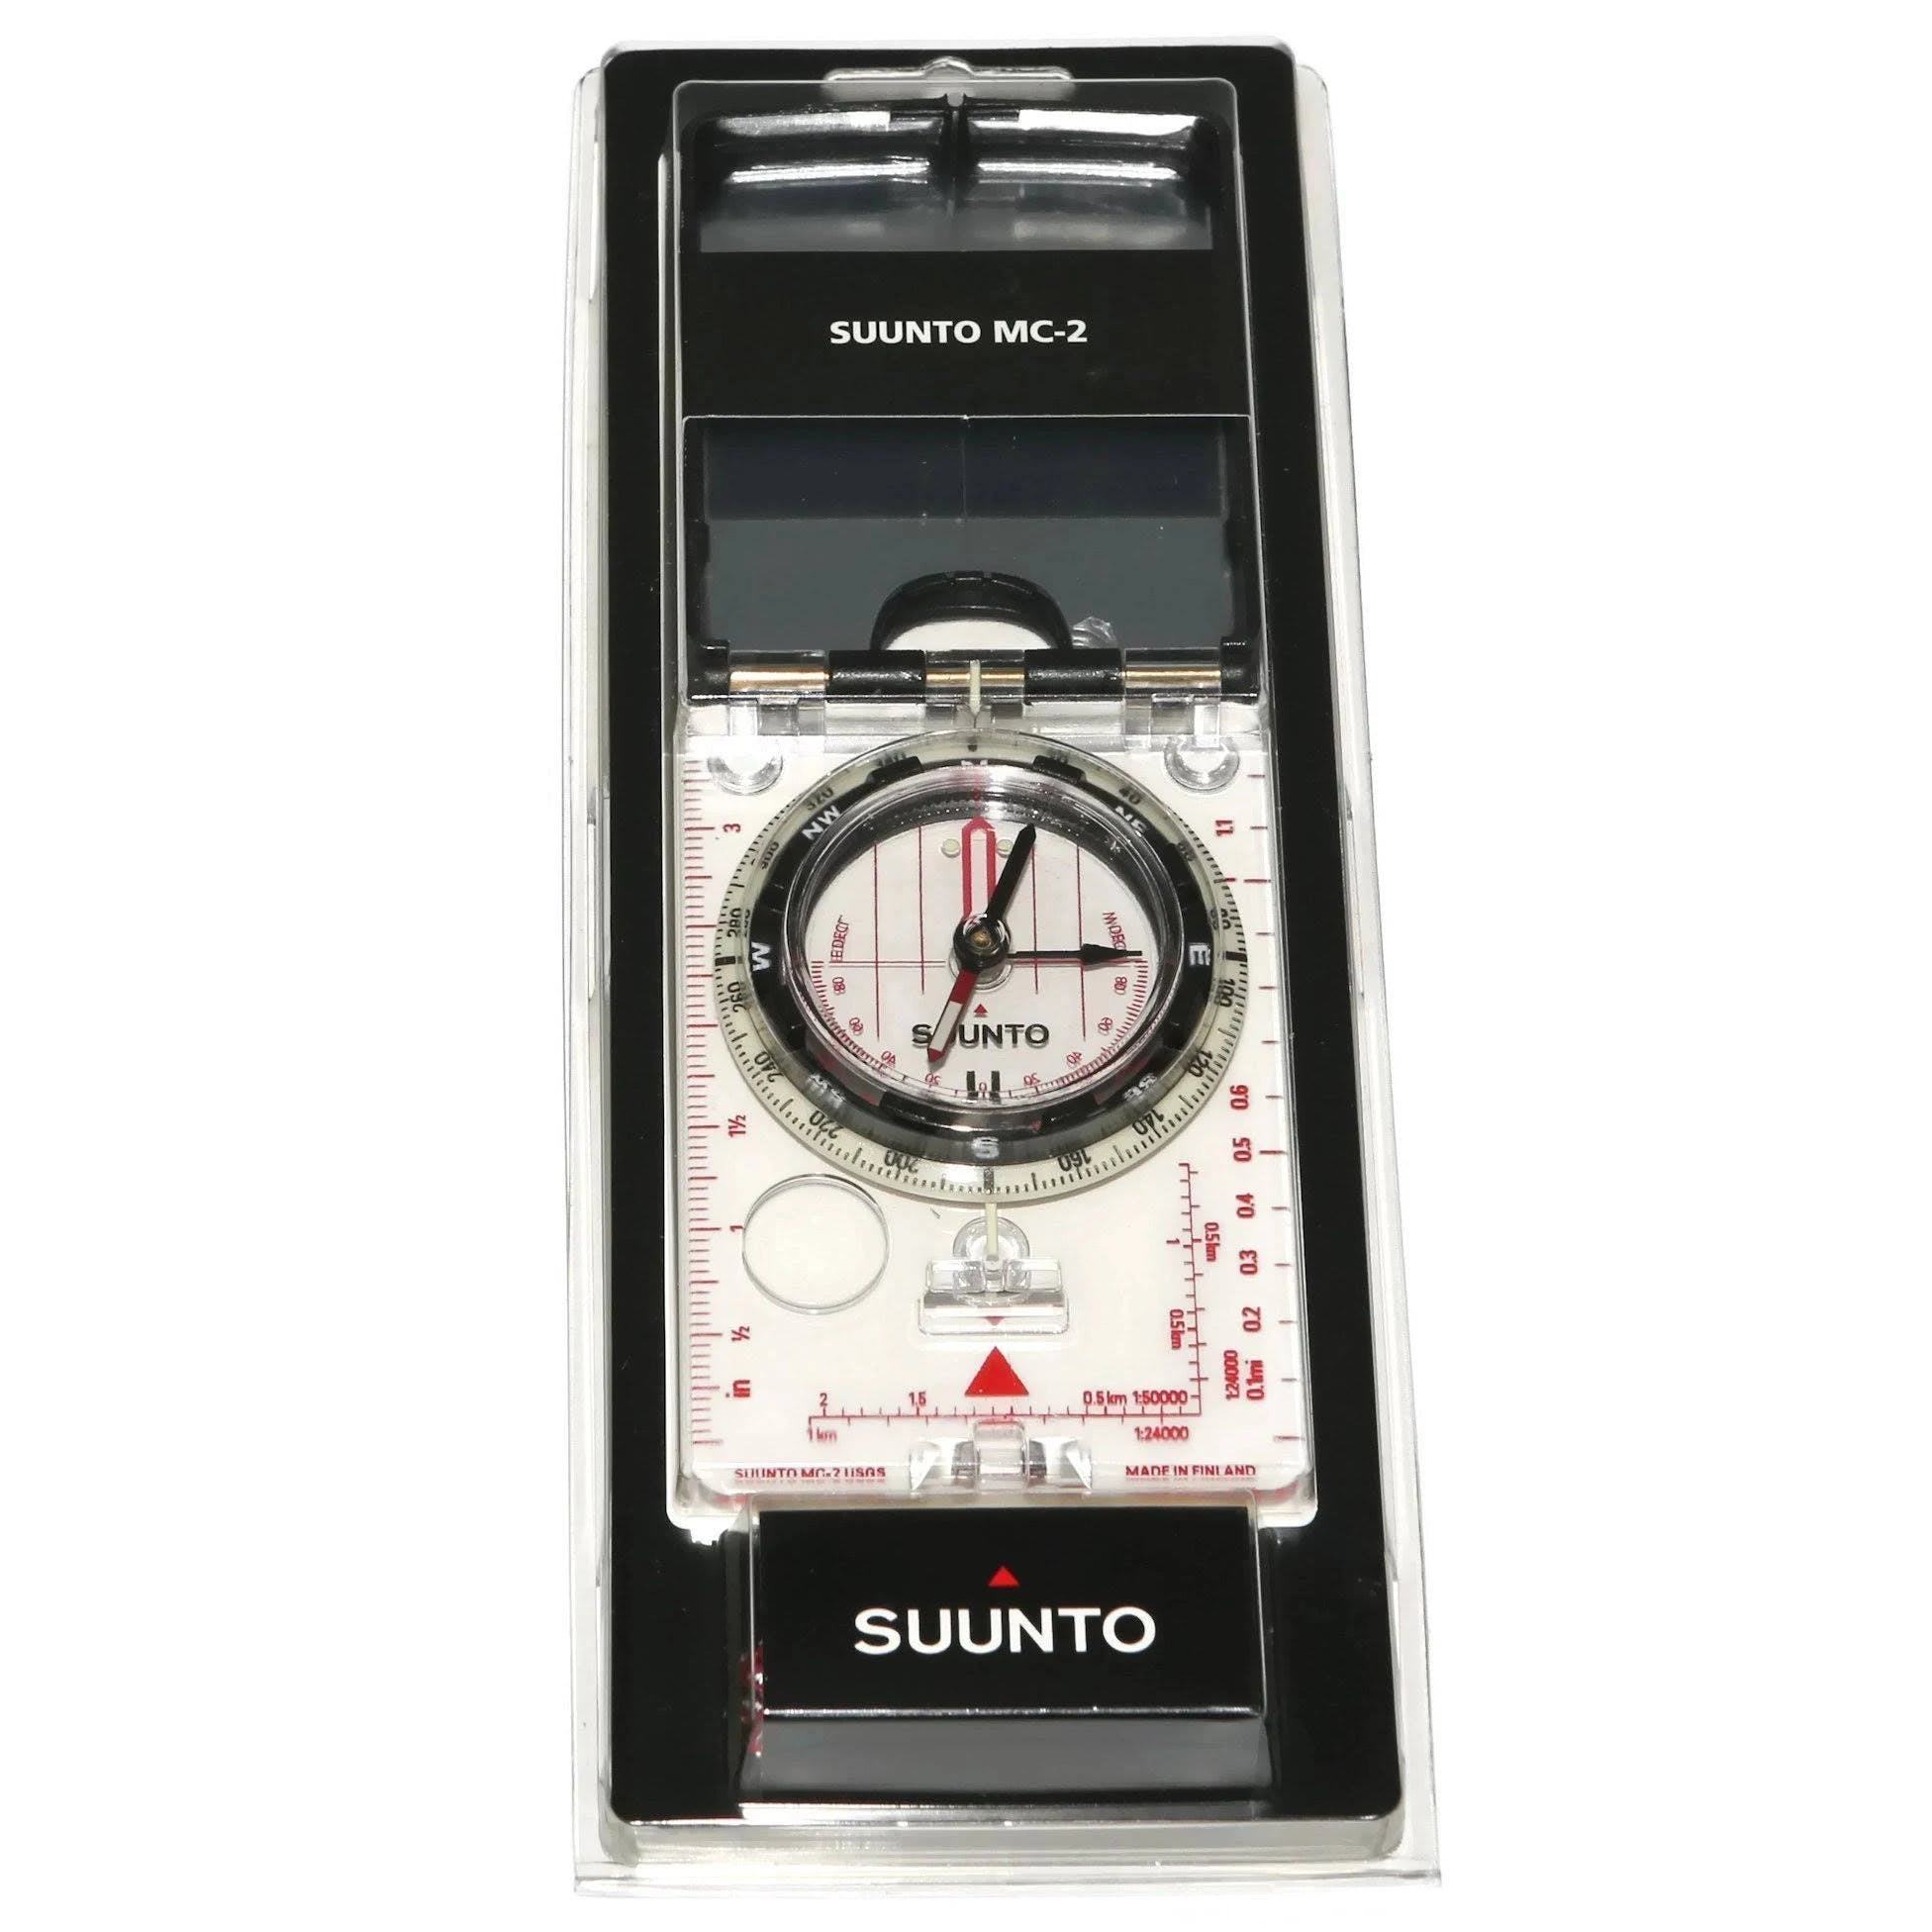 Suunto MC-2 D/L IN/NH Mirror Sighting Compass, Black